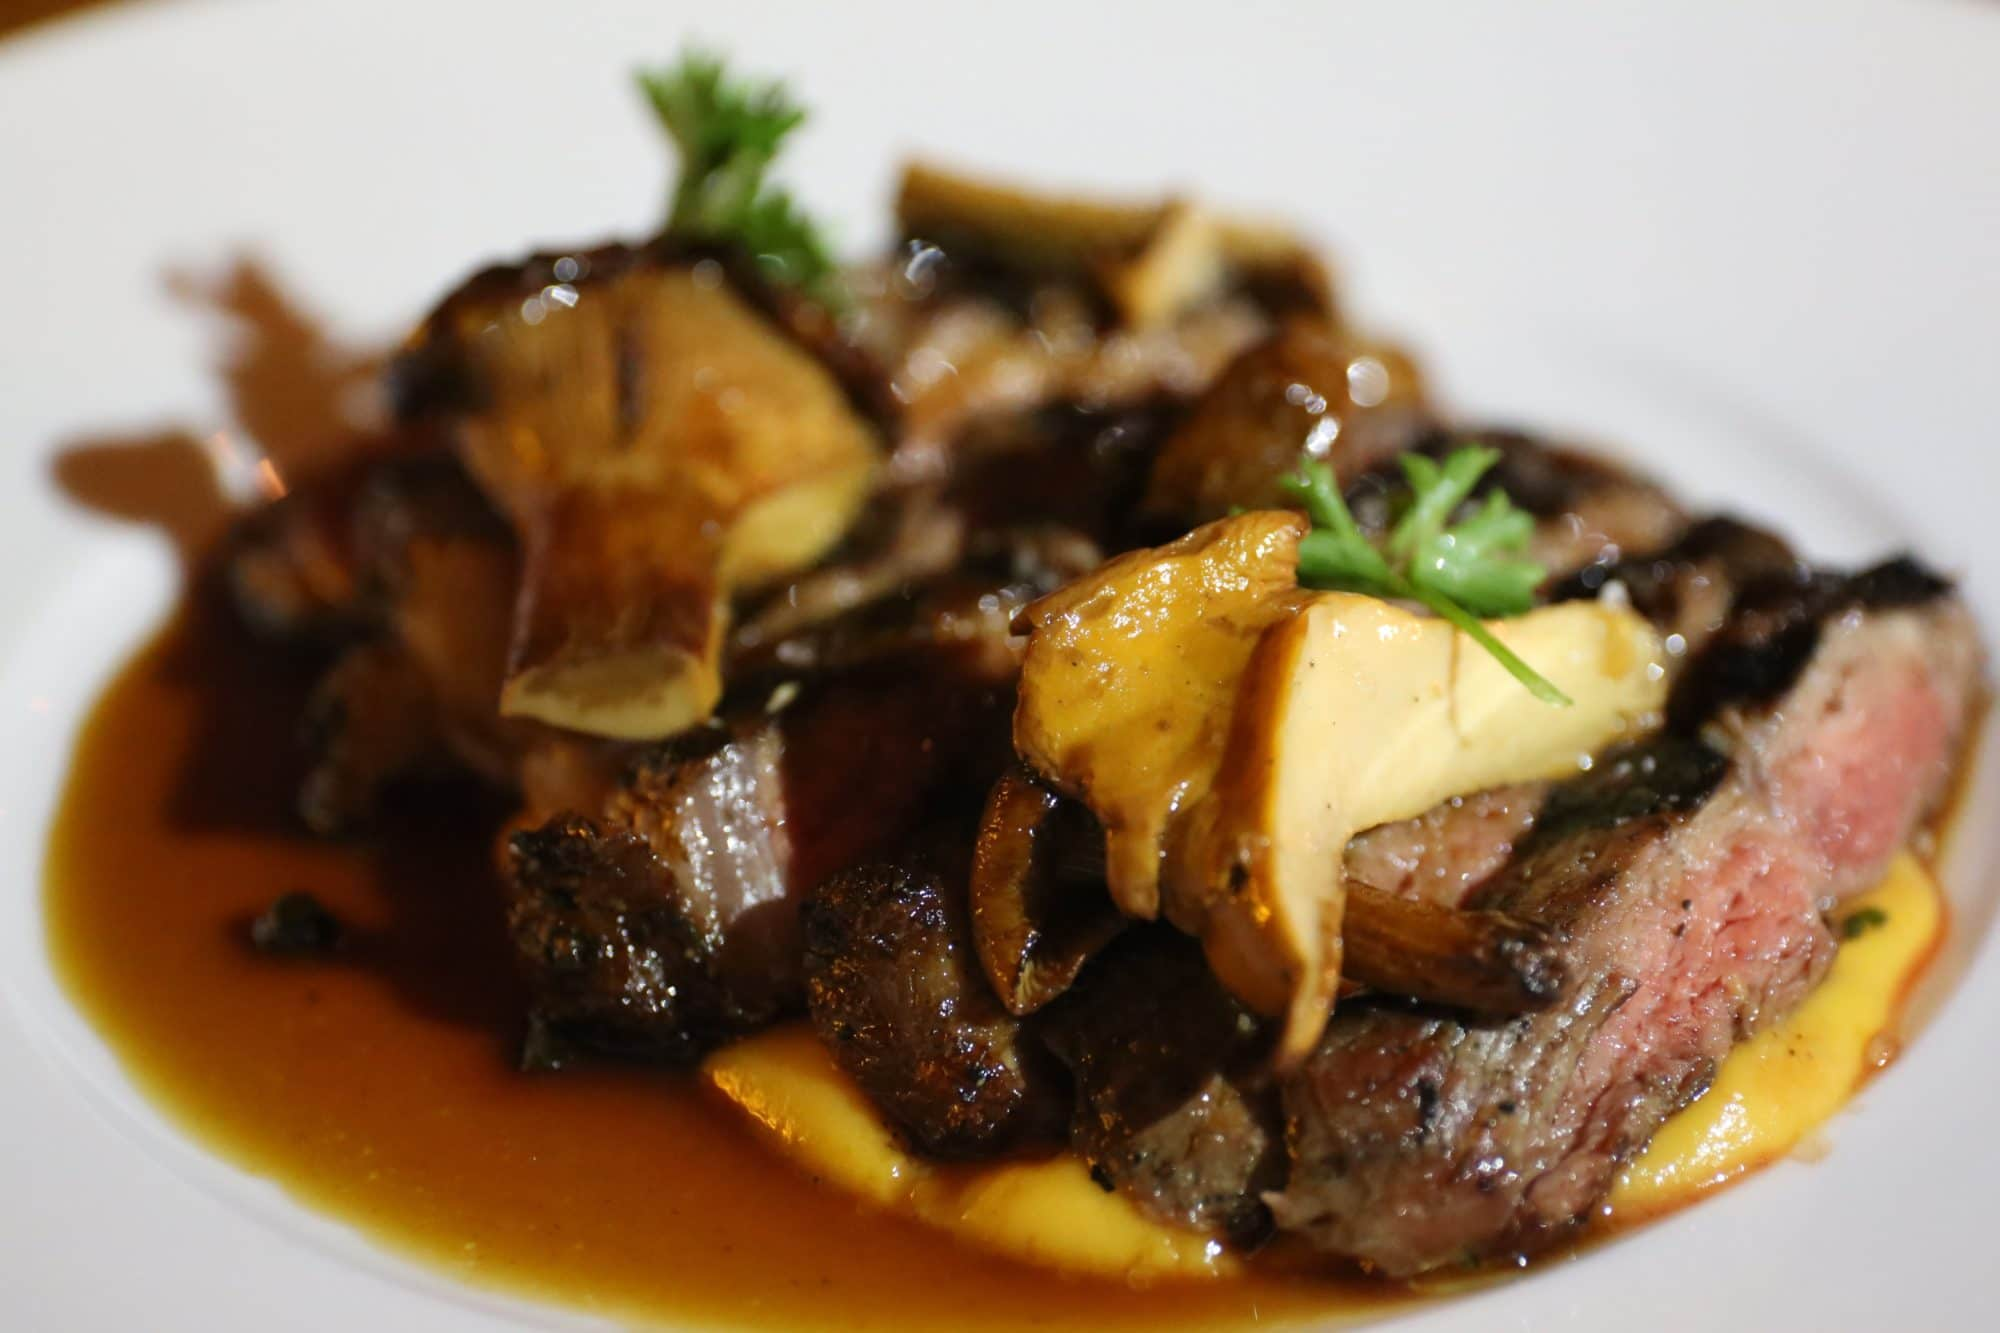 Carne y Camote steak with sweet potato puree and mushrooms.